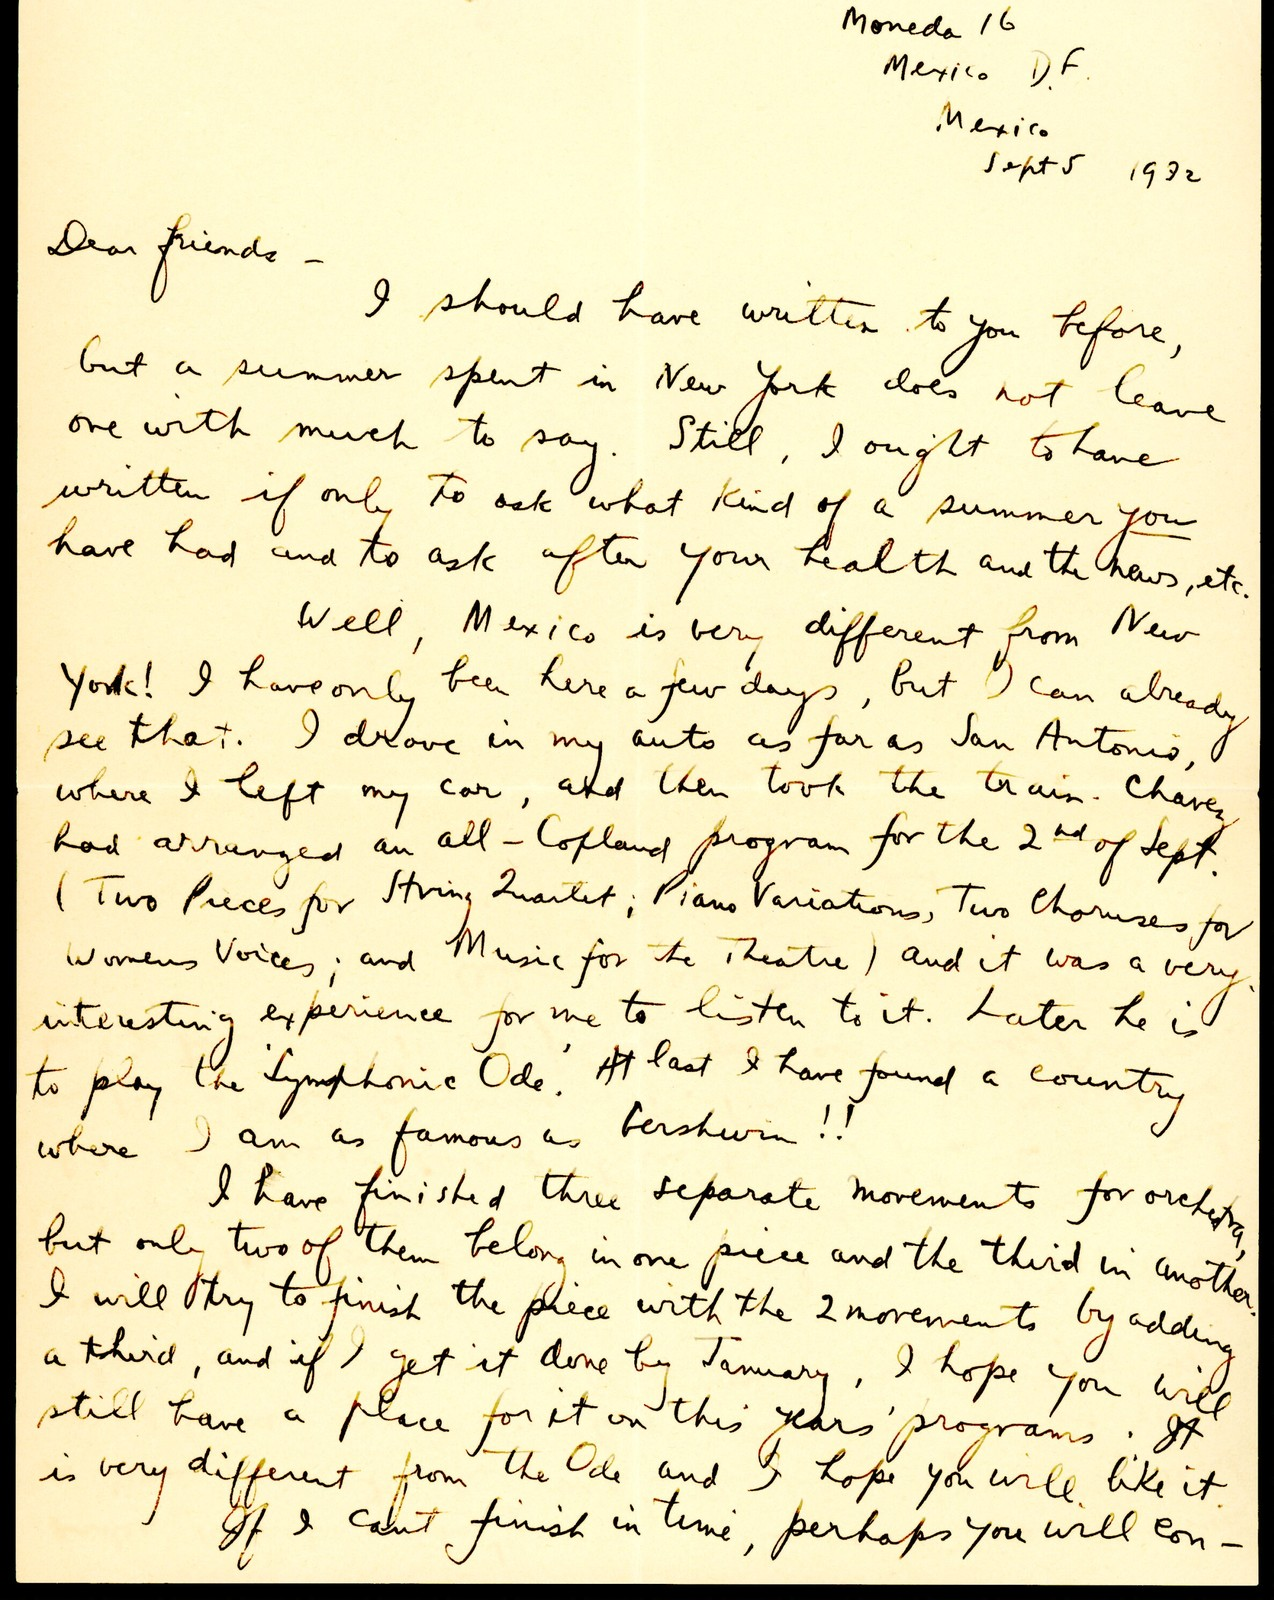 Letter from Aaron Copland to Serge and Natalie Koussevitzky, September 5, 1932.